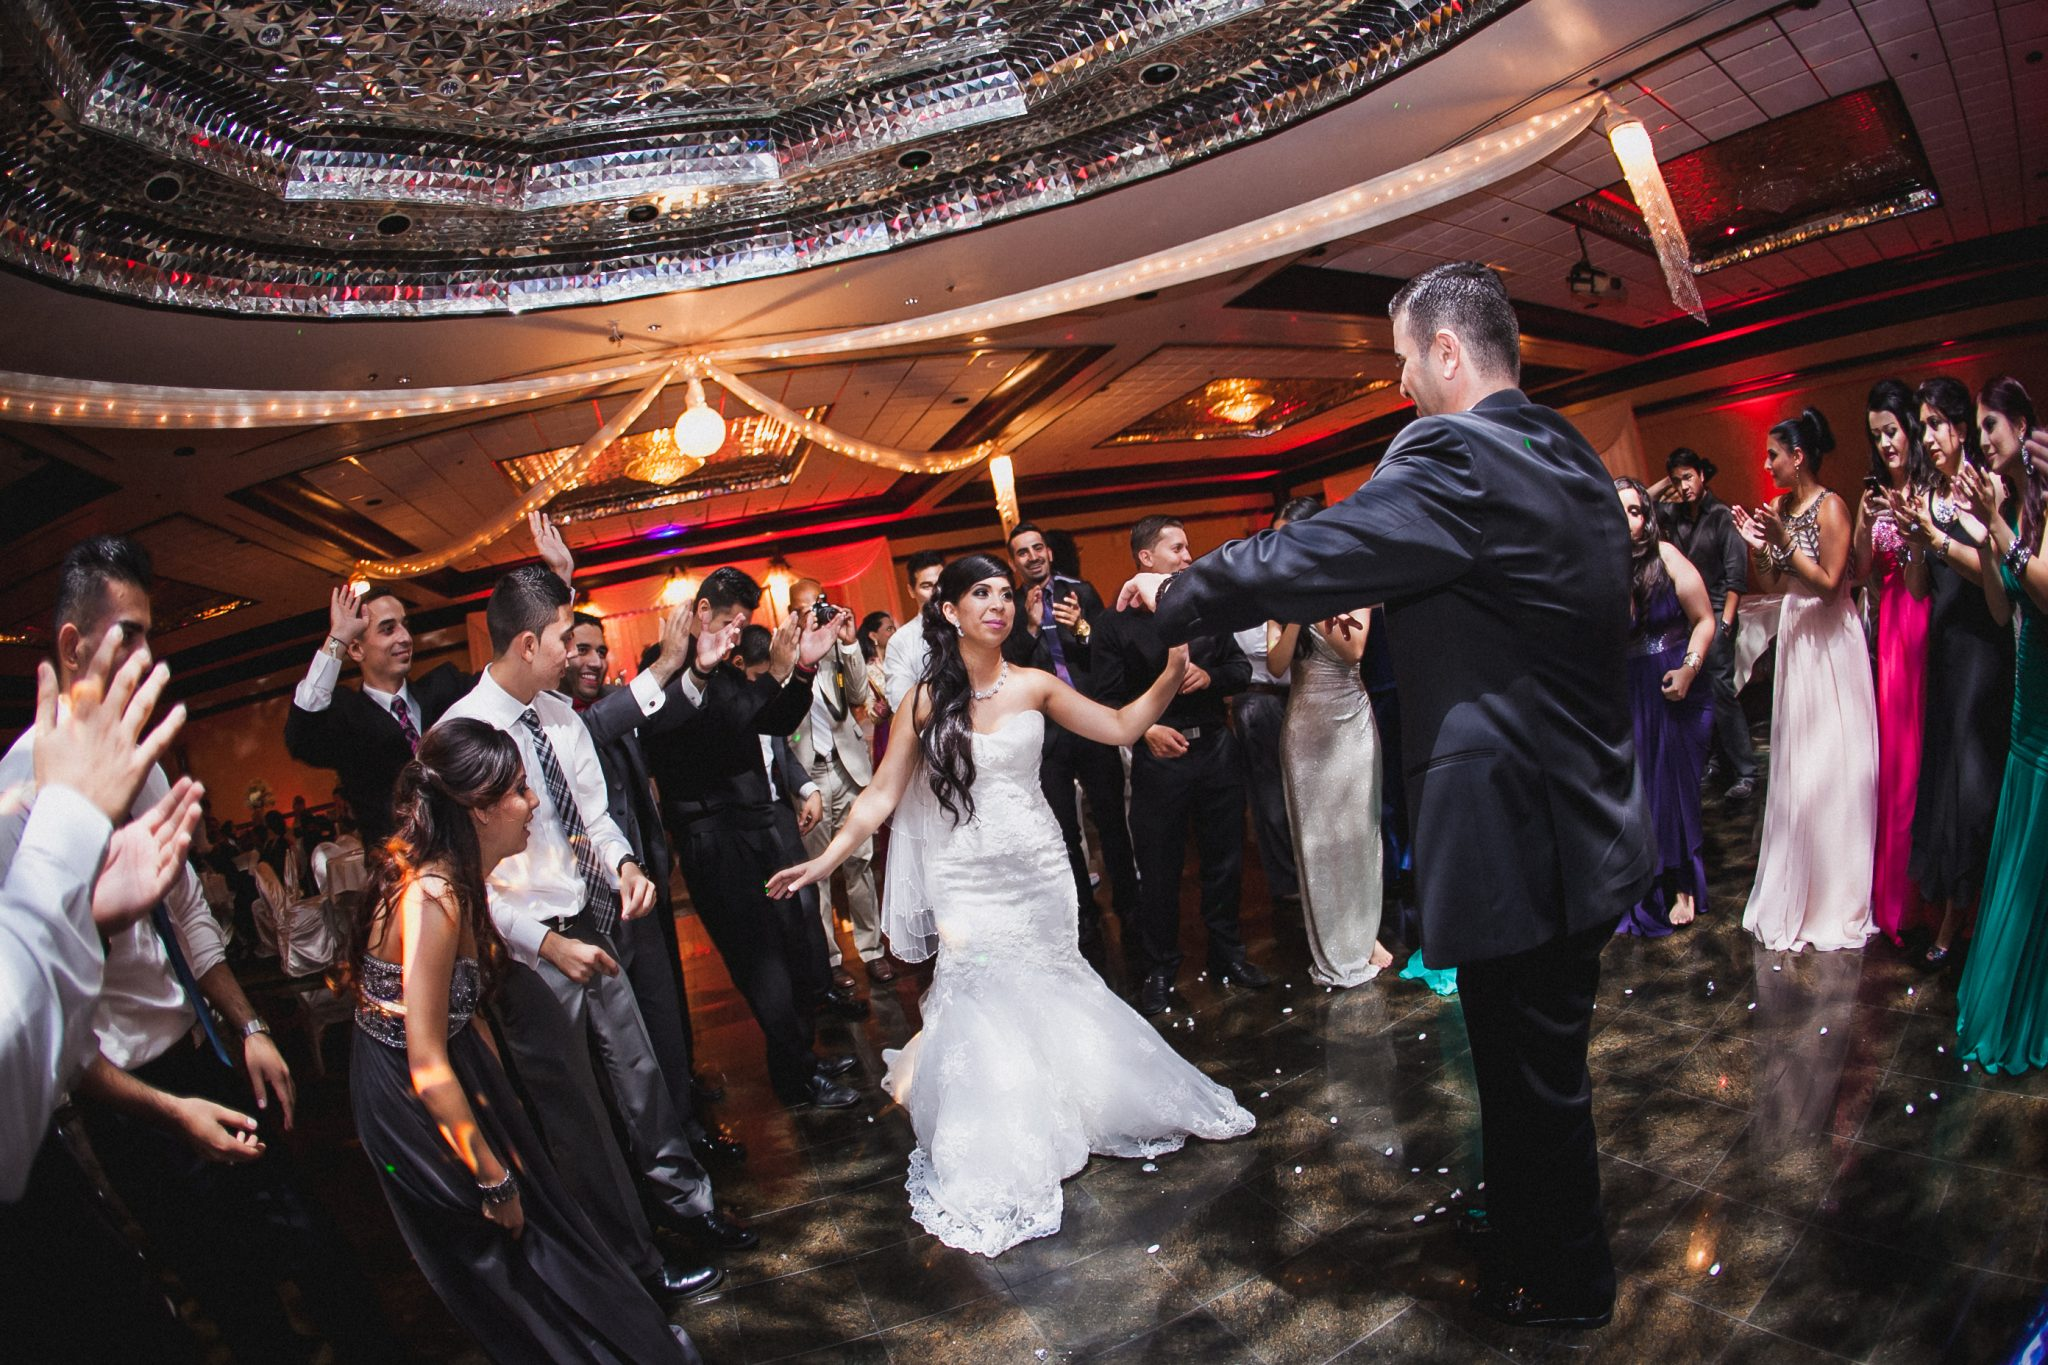 Bride and groom dancing in the middle of a circle at the reception